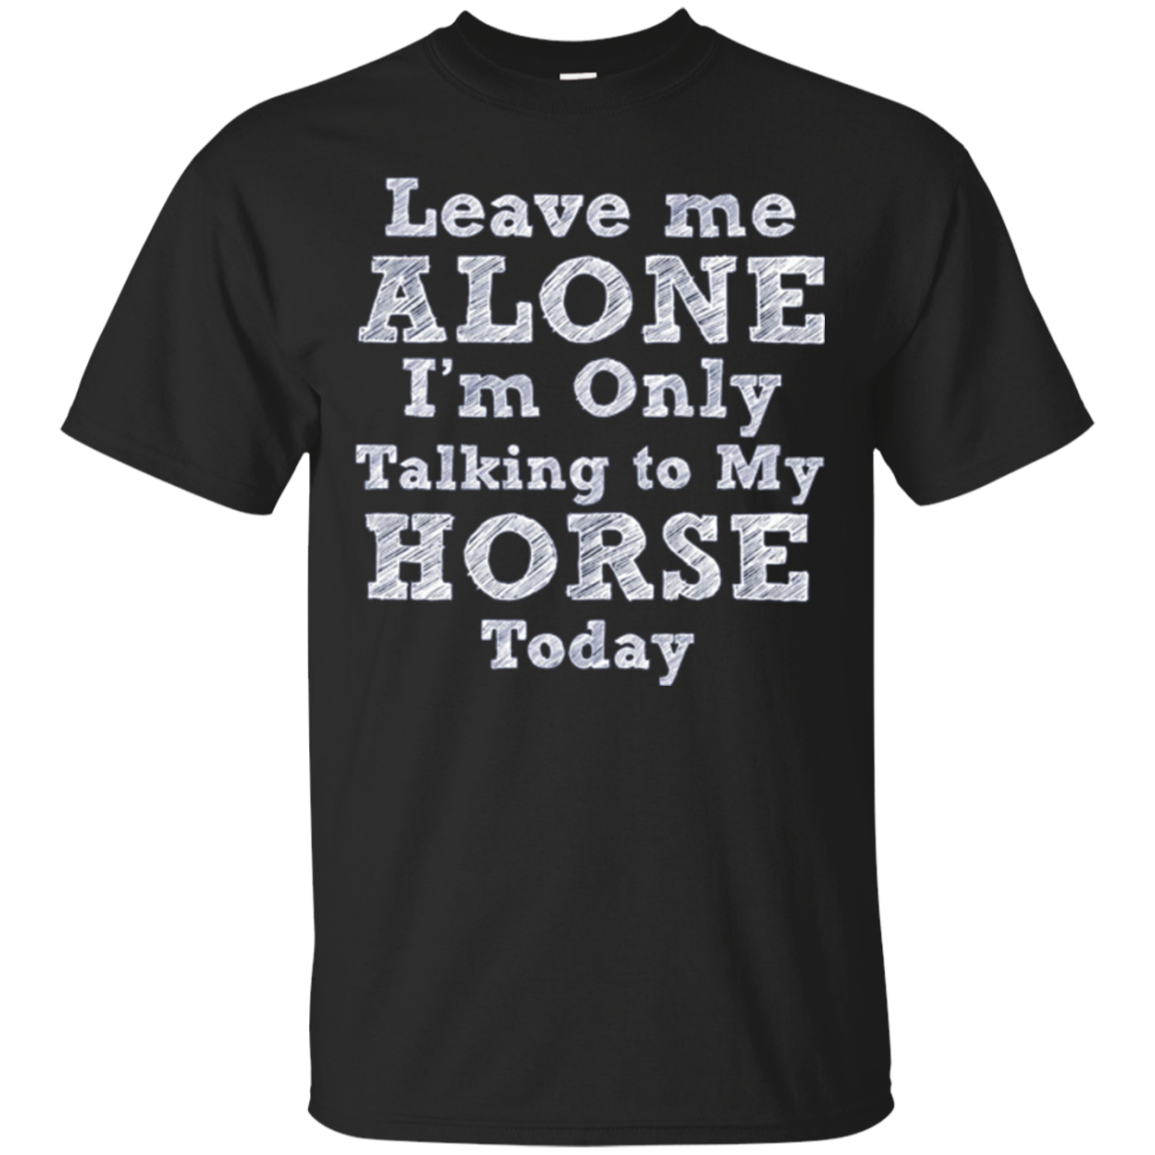 Leave me alone I'm only talking to my Horse today t shirt